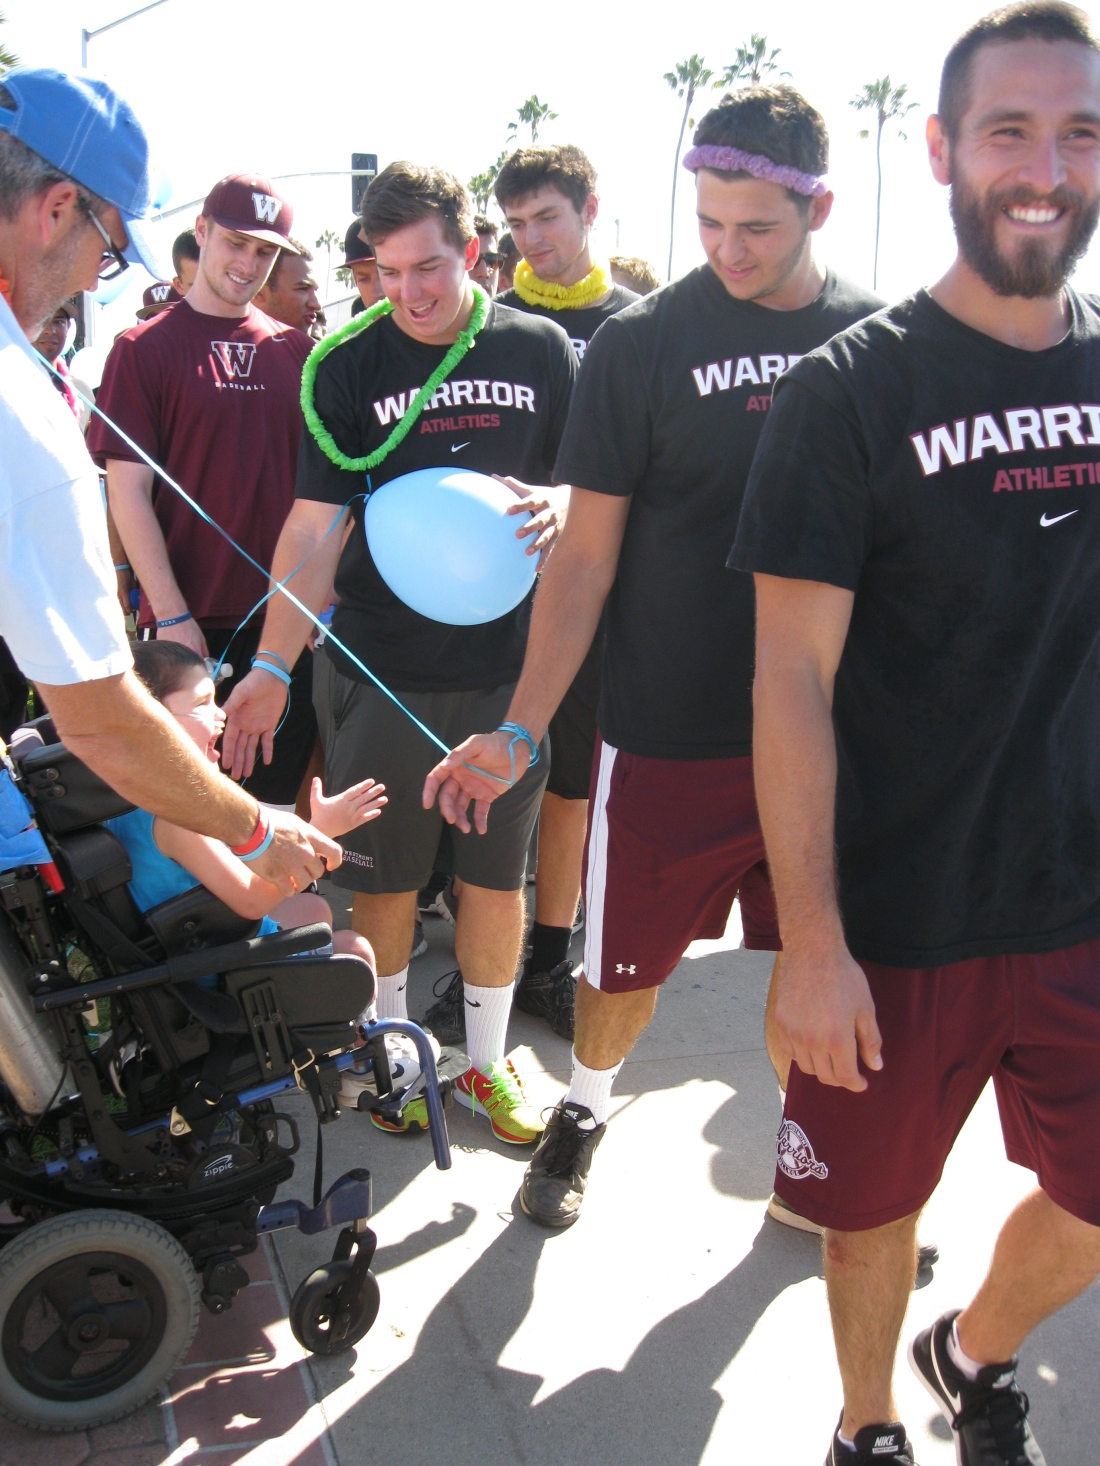 High fives for all the Westmont Warriors at the start of the walk!